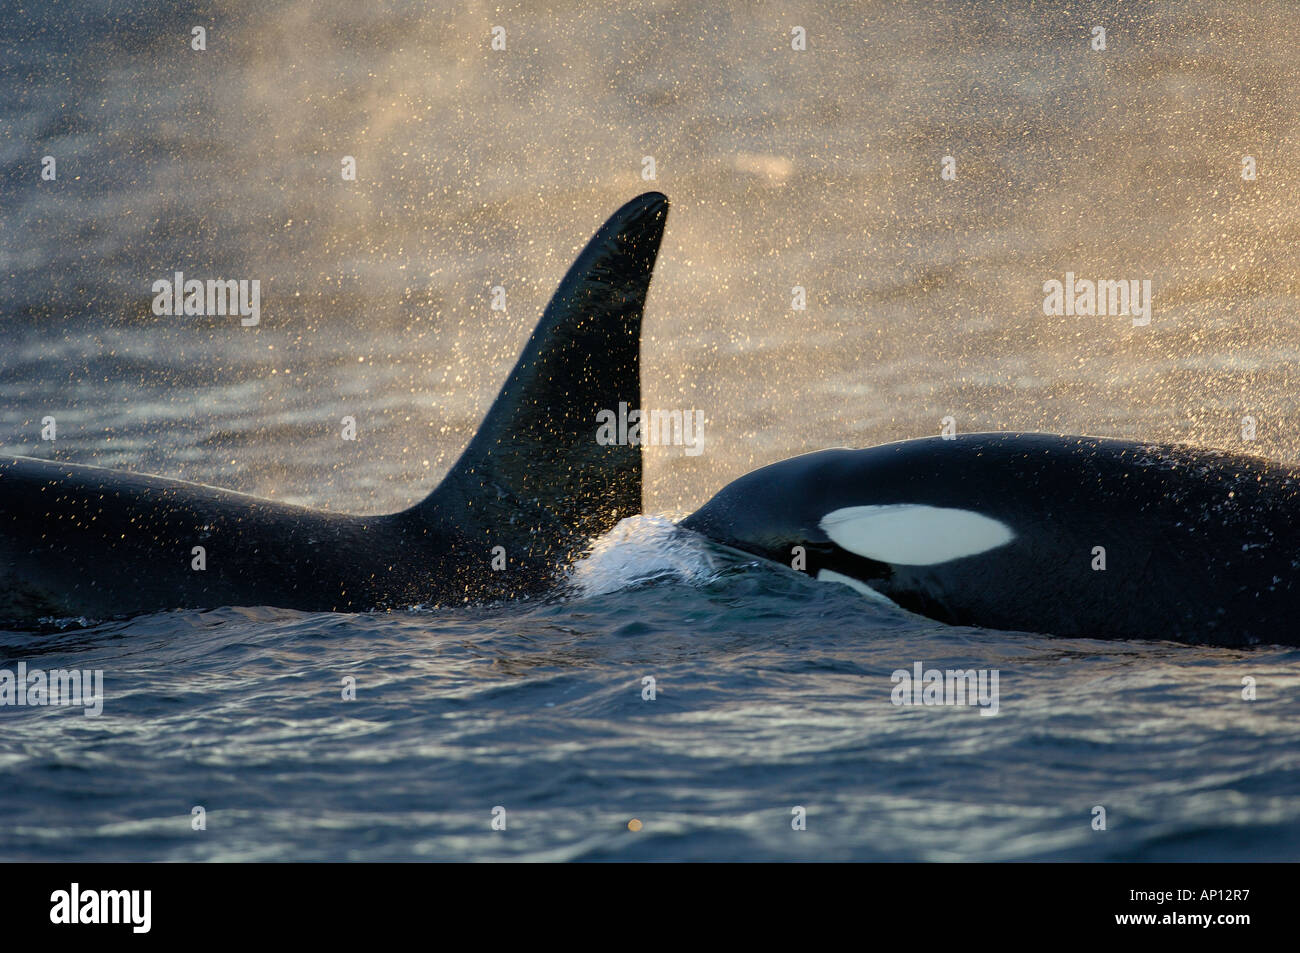 Orcas or Killer whales (Orcinus orca) live in groups called pods - Stock Image